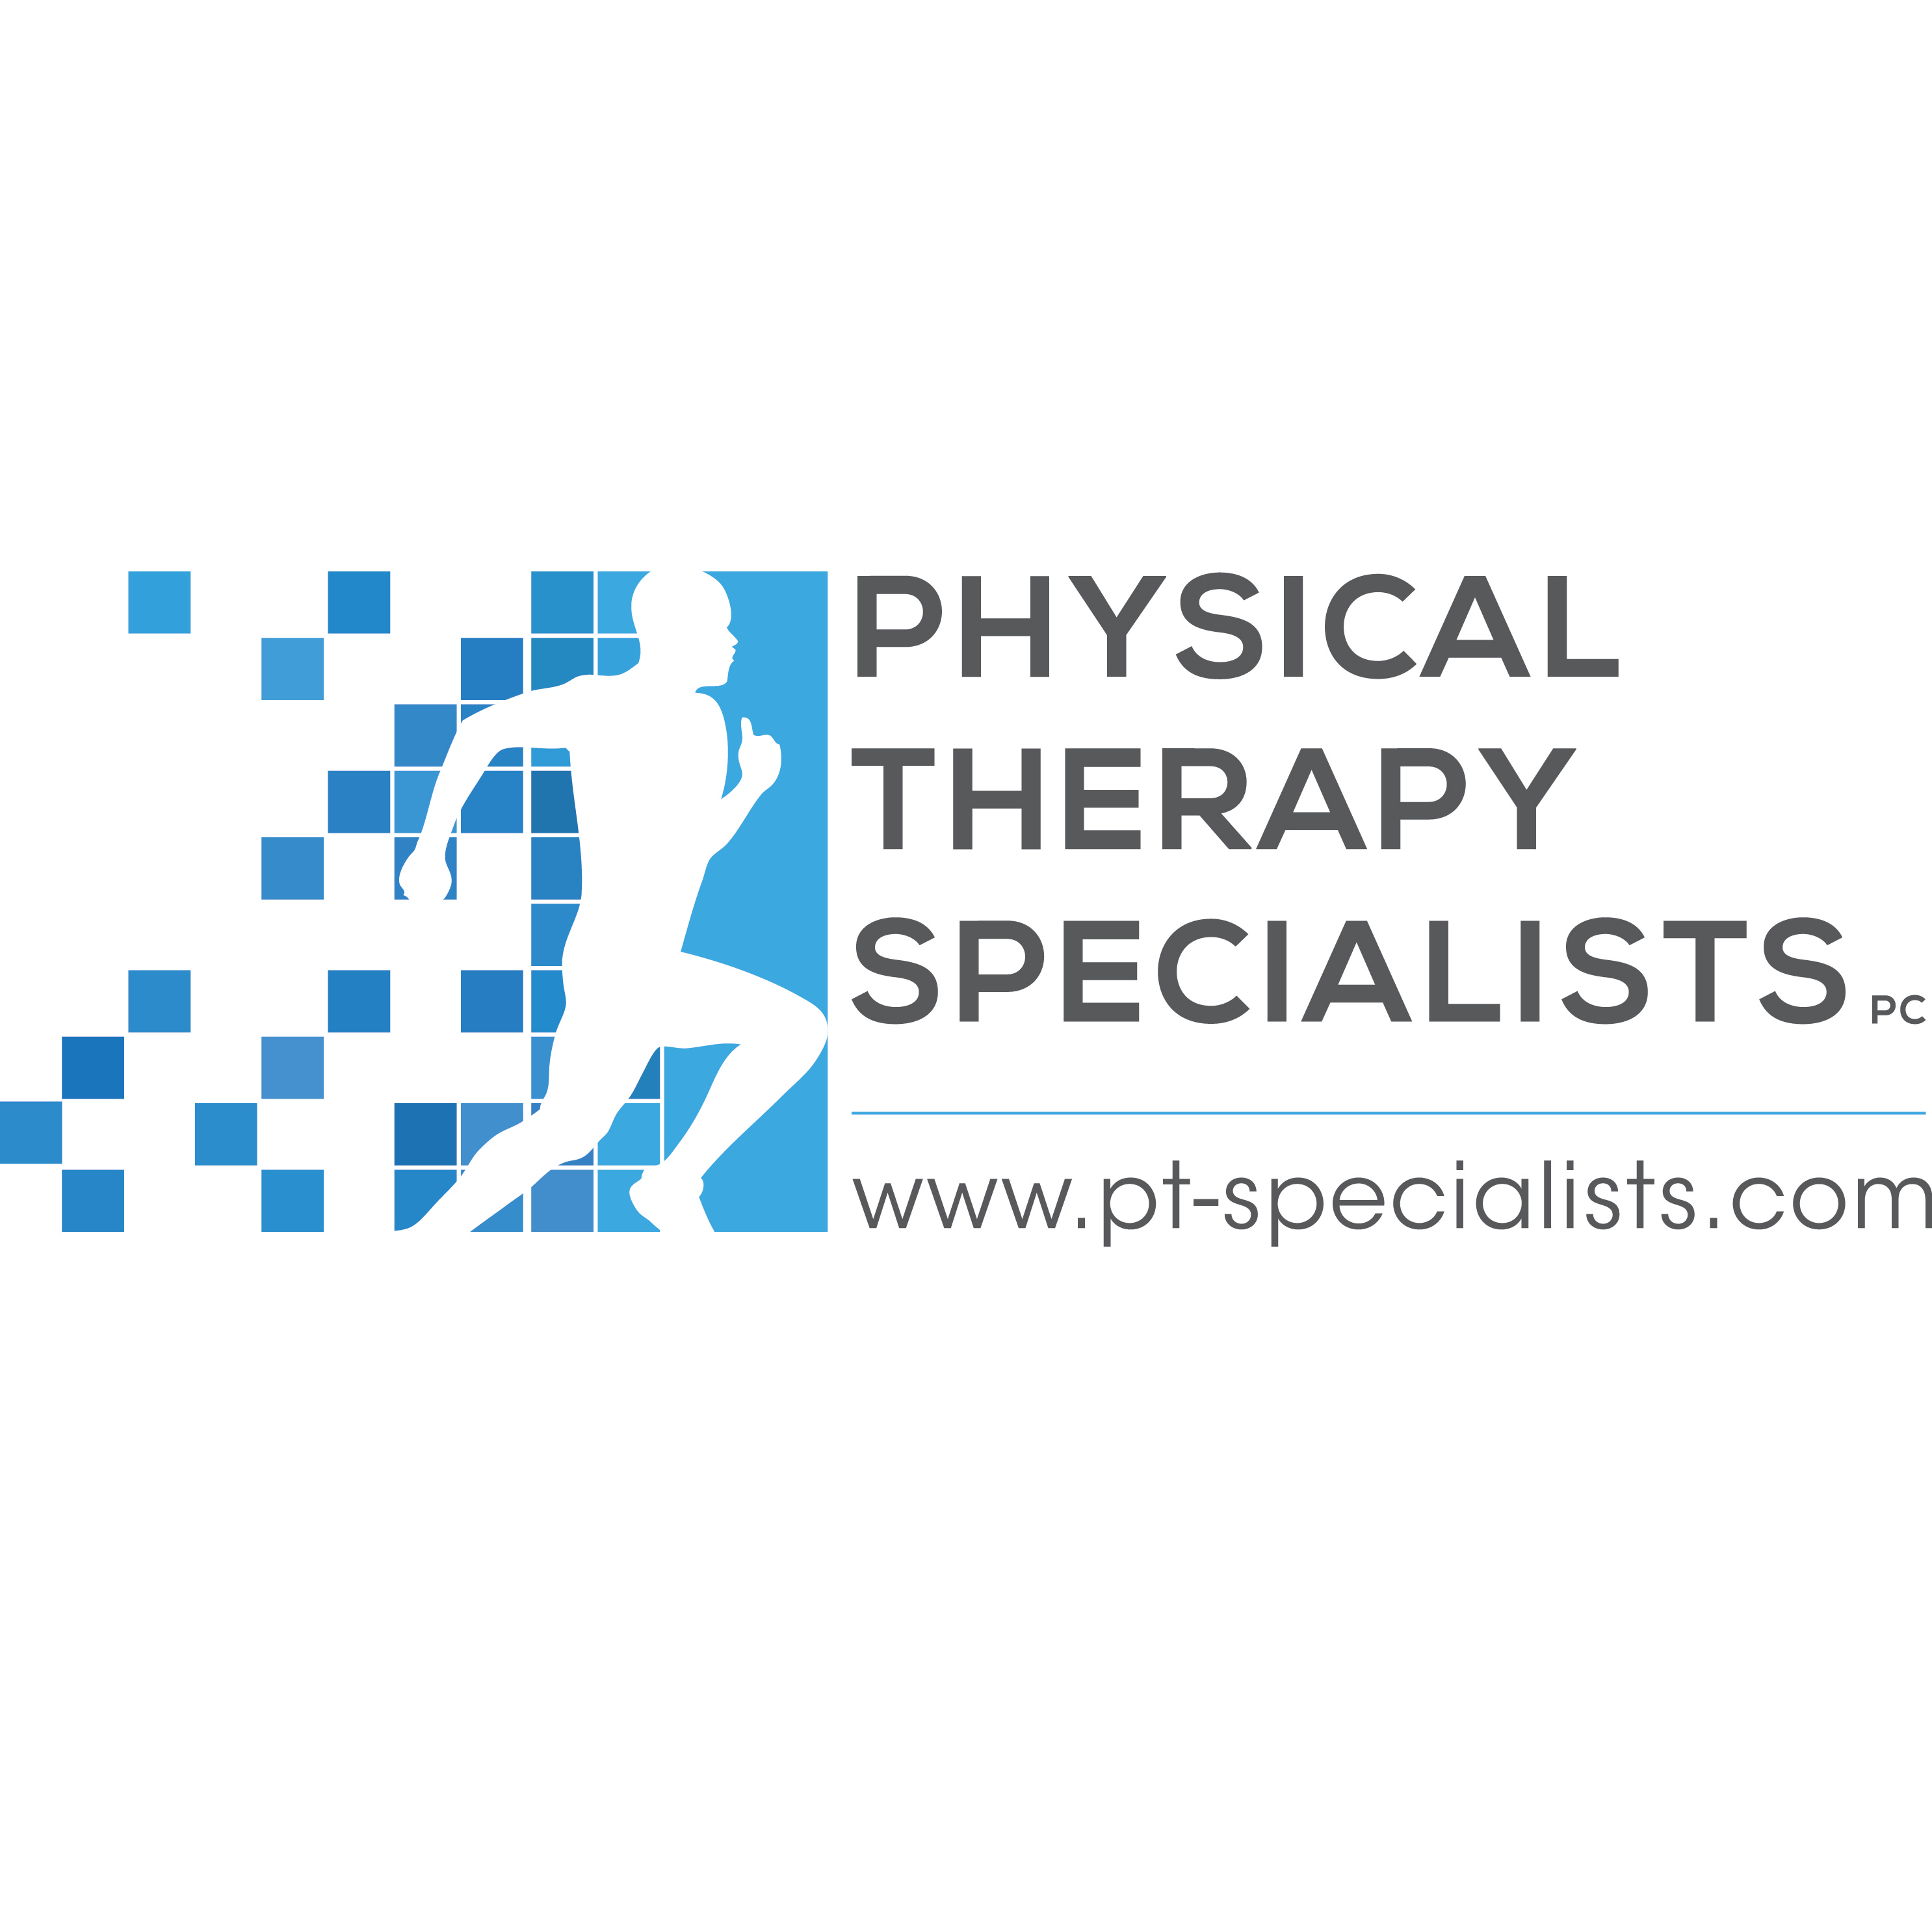 Physical Therapy Specialists, PC